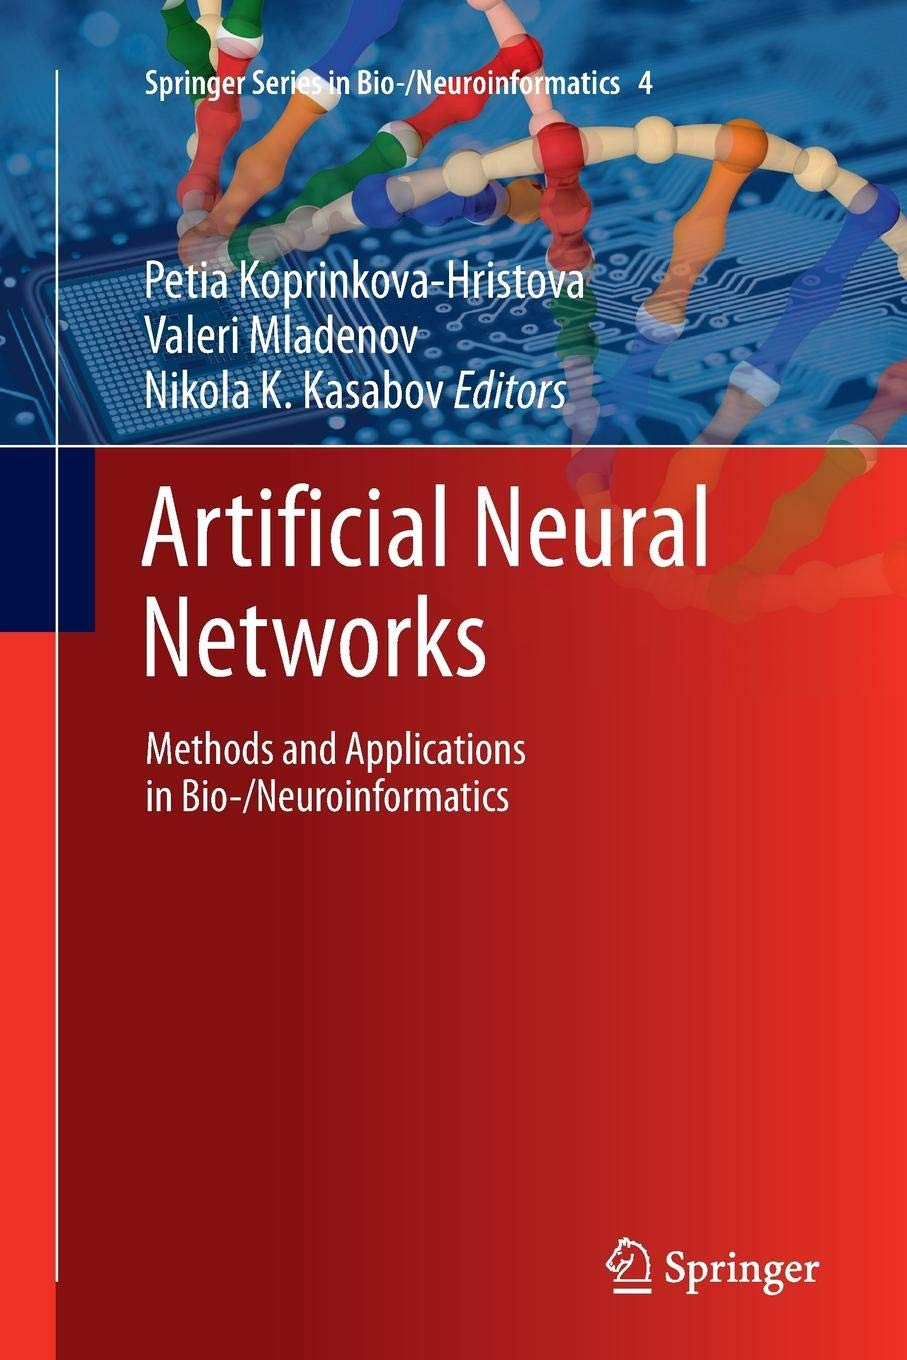 Artificial Neural Networks: Methods and Applications in Bio-/Neuroinformatics